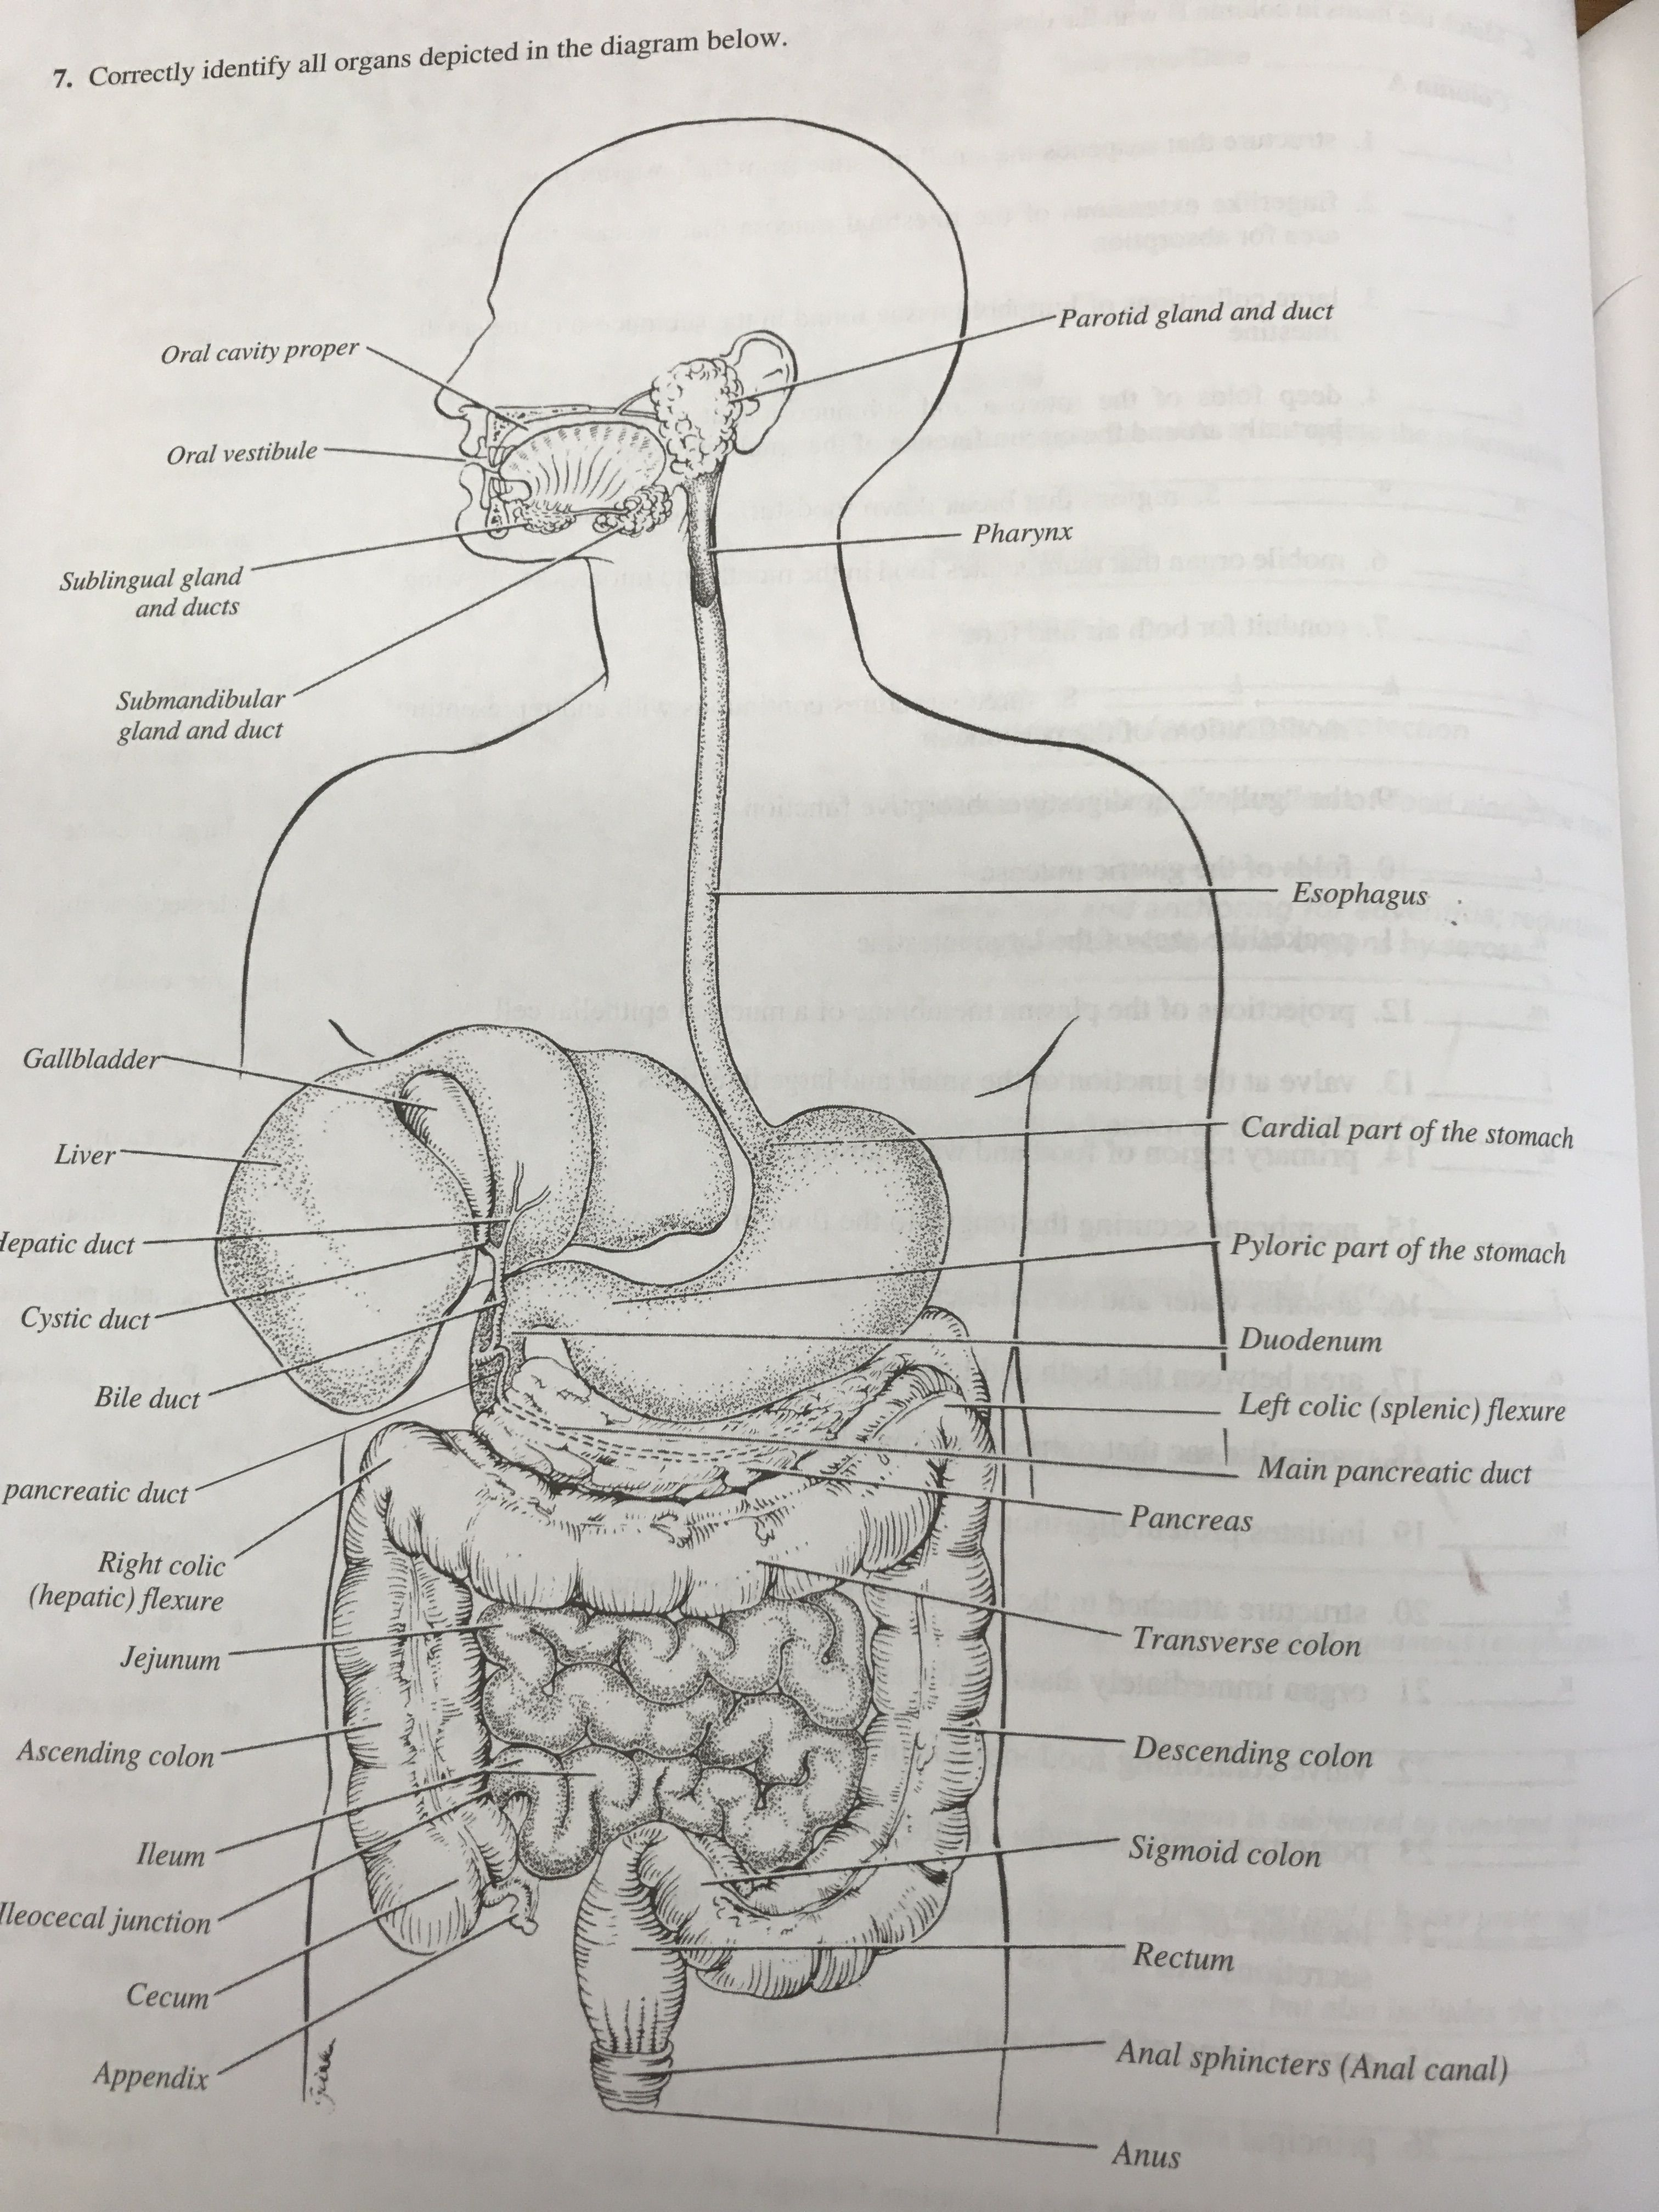 Anatomy And Physiology Of Ent Organs Wiring Diagram